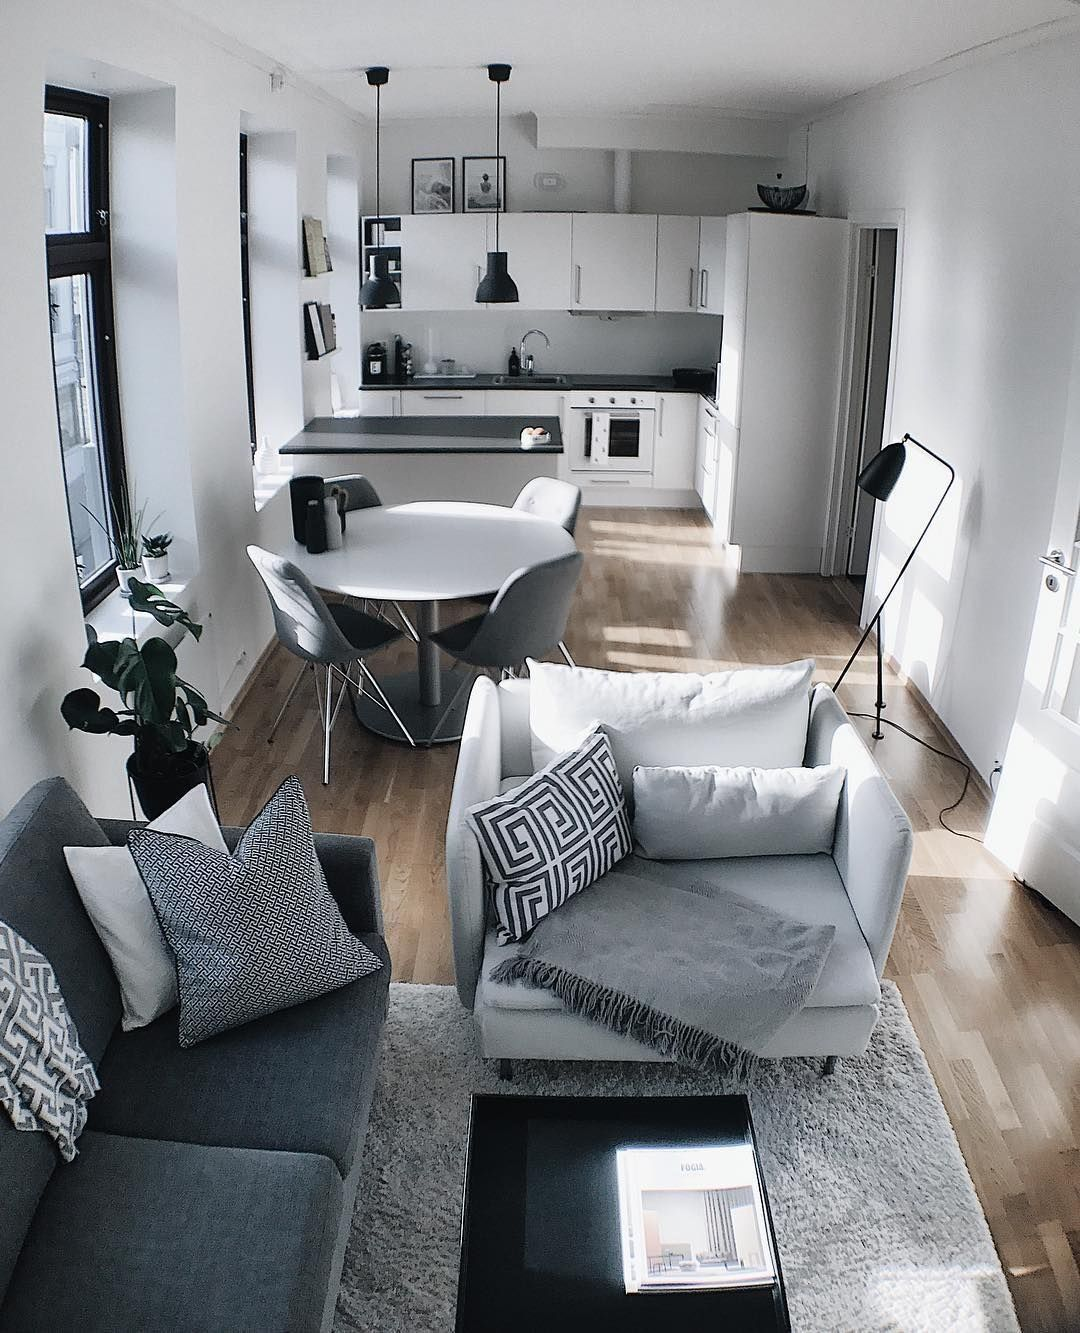 35 Apartment Decorating Ideas On A Budget For Beautiful